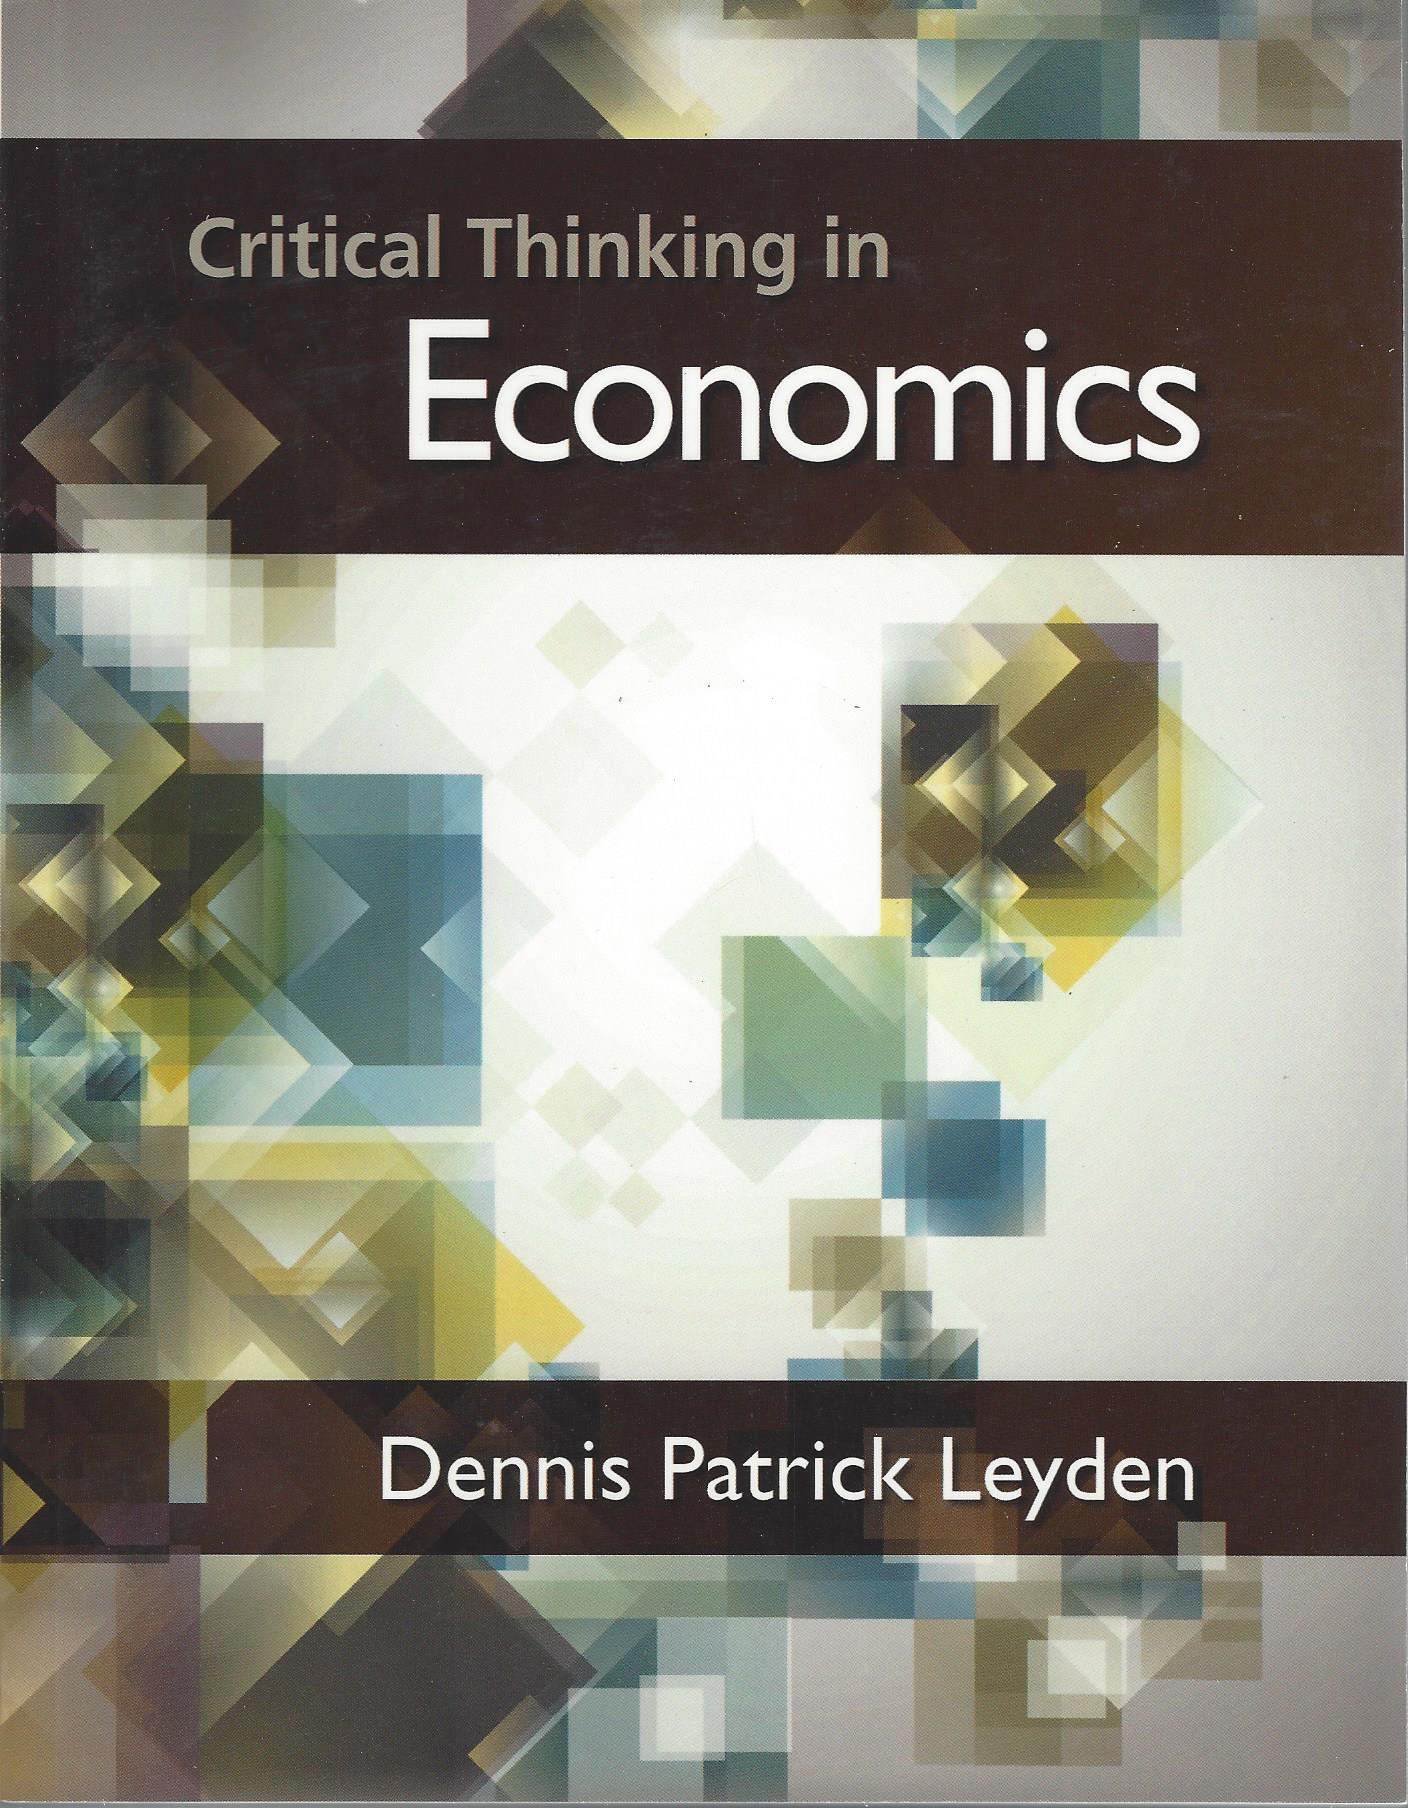 critical thinking in economics dennis patrick leyden